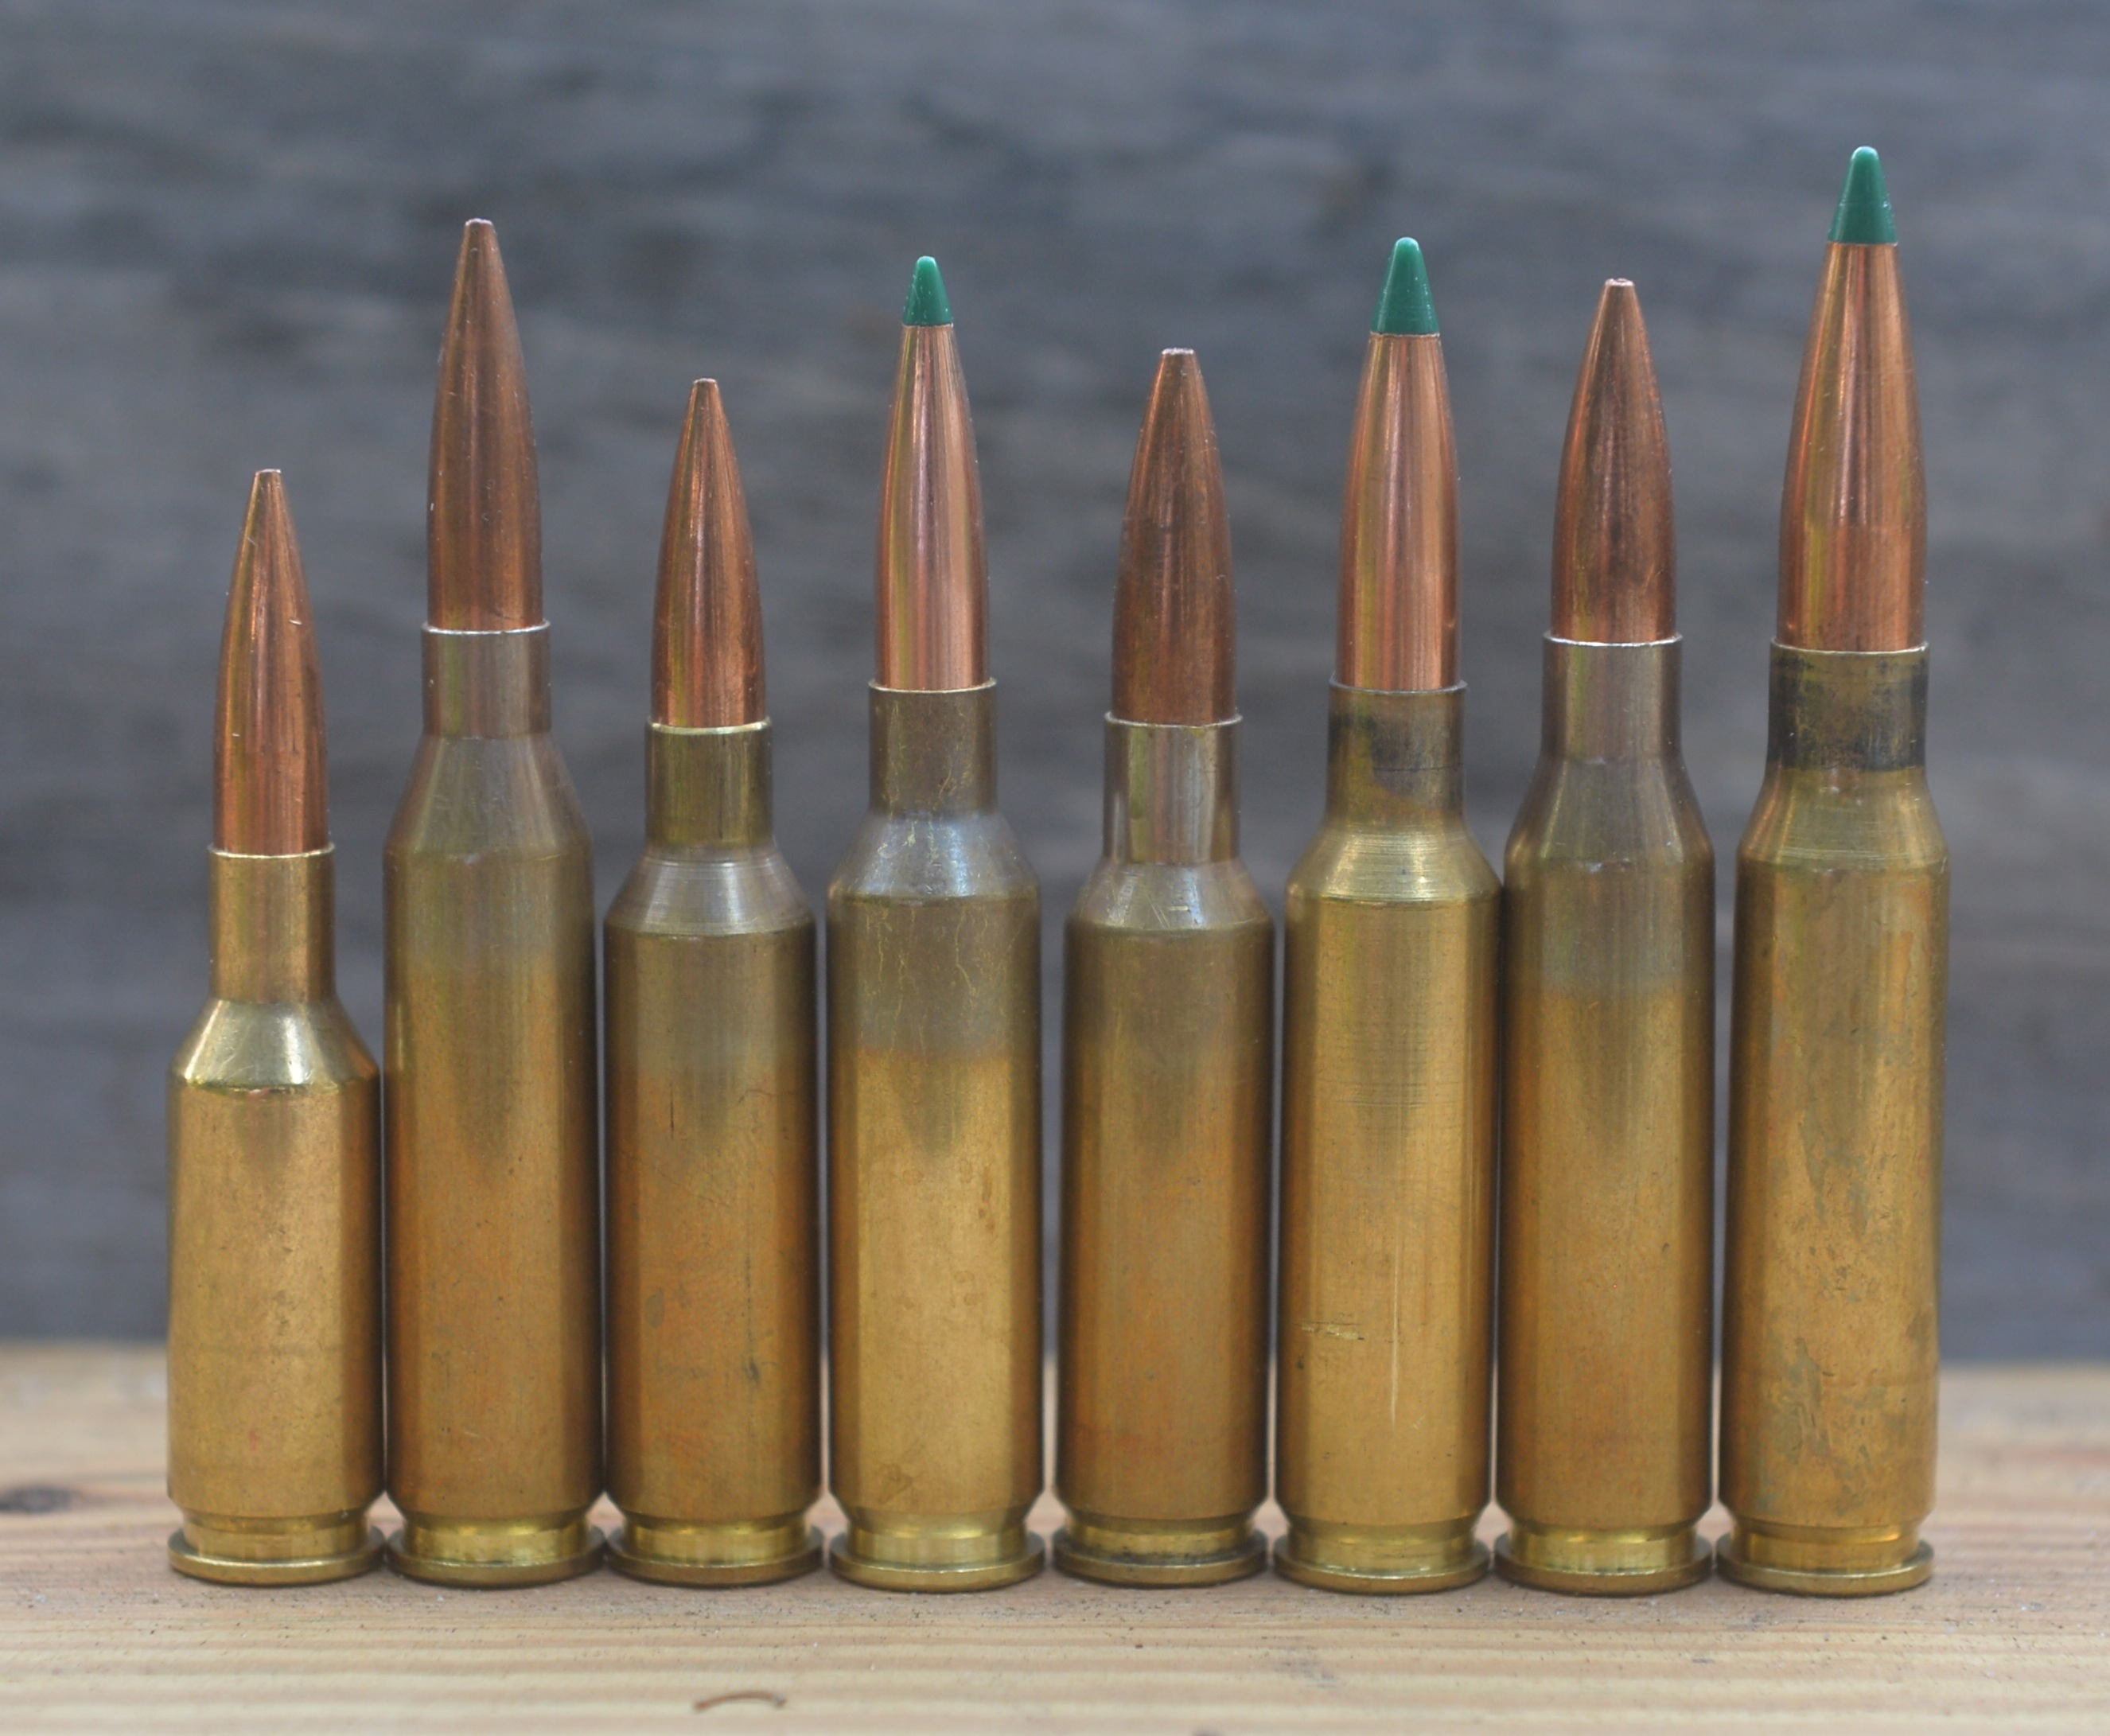 Commonly encountered match cartridges, left to right: 6mm BR, 243 Winchester, 6x47 Lapua, 6 Creedmoor, 6.5x47 Lapua, 6.5 Creedmoor, 260 Remington, and 308 Winchester